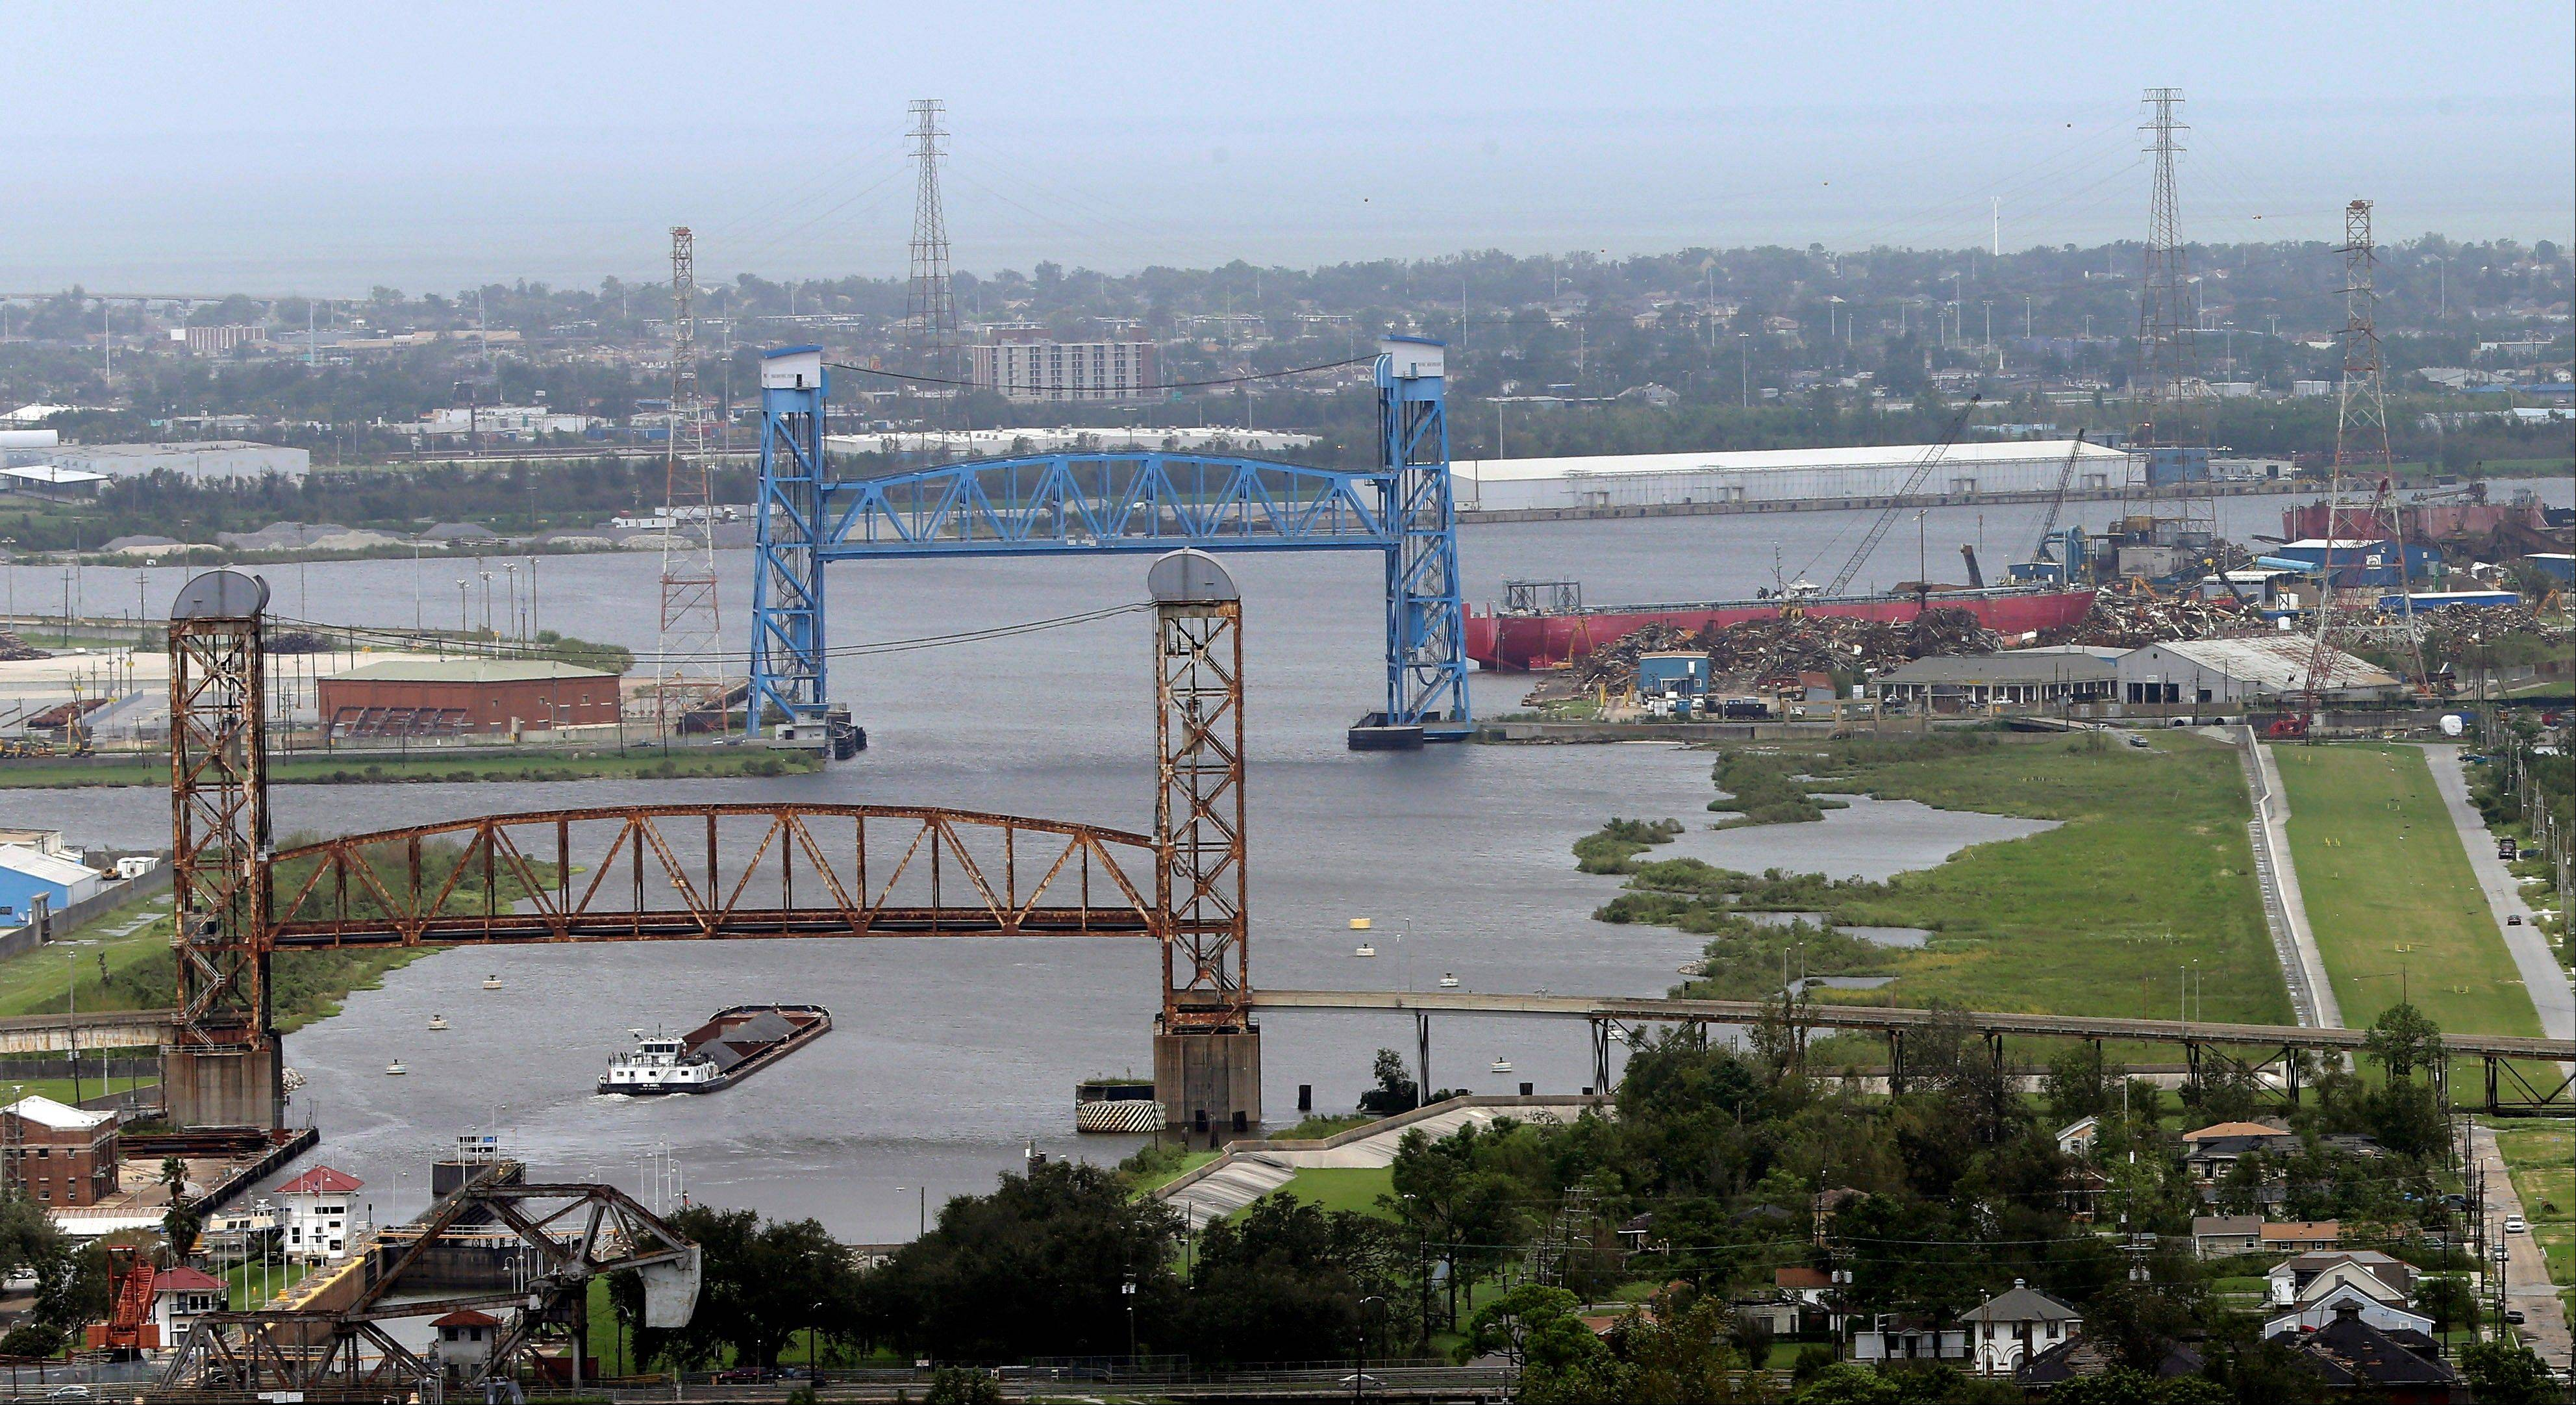 Associated PressThis aerial photo shows the Industrial Canal Friday, after Isaac hit earlier in the week in New Orleans. Floodwaters from Hurricane Katrina broke through the flood wall, right, seven years ago, covering the Lower 9th Ward neighborhood.